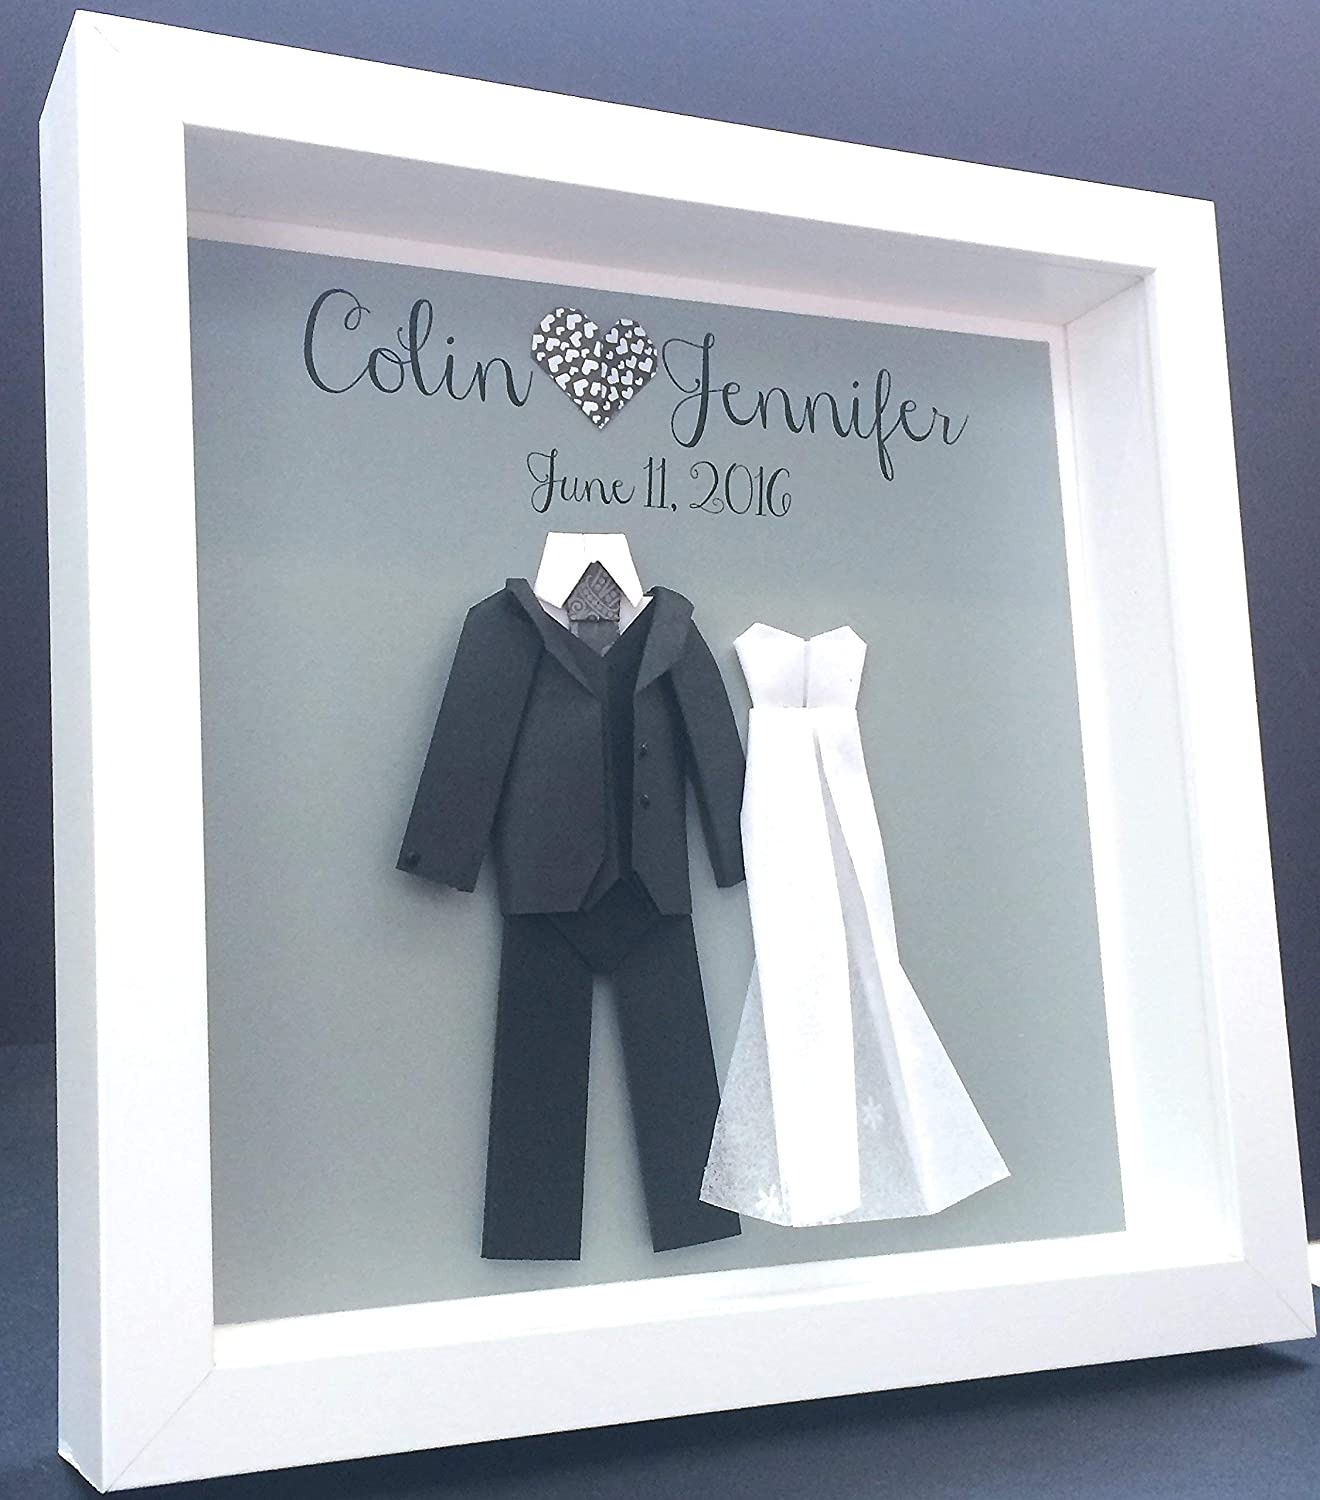 Personalized Wedding Frame, Engagement, First Anniversary, Bridal Shower Paper Origami Bride & Groom Custom Wall Art Gift